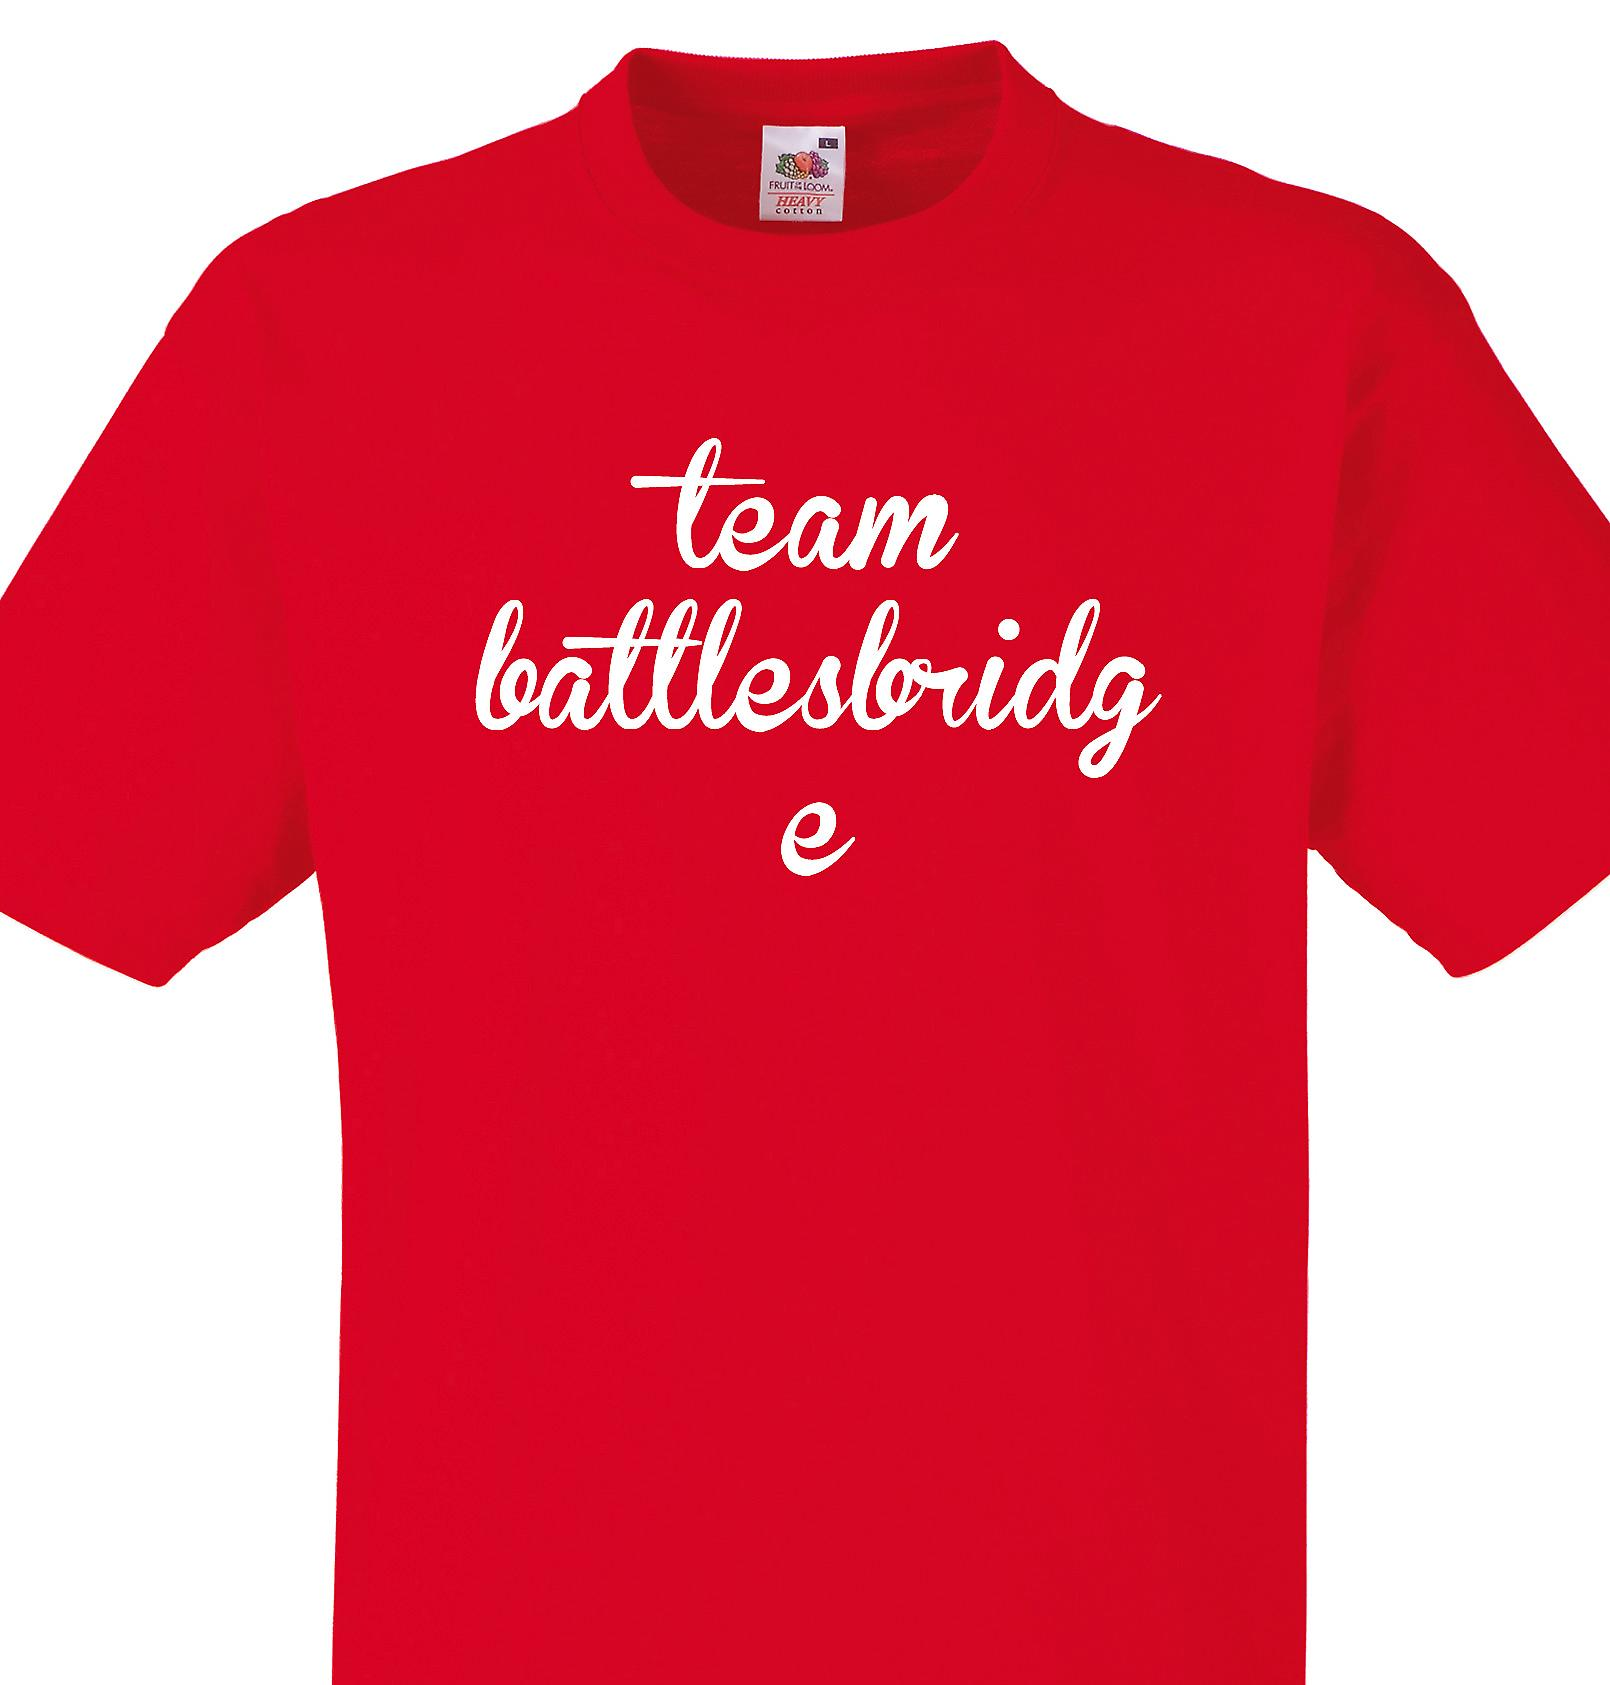 Team Battlesbridge Red T shirt